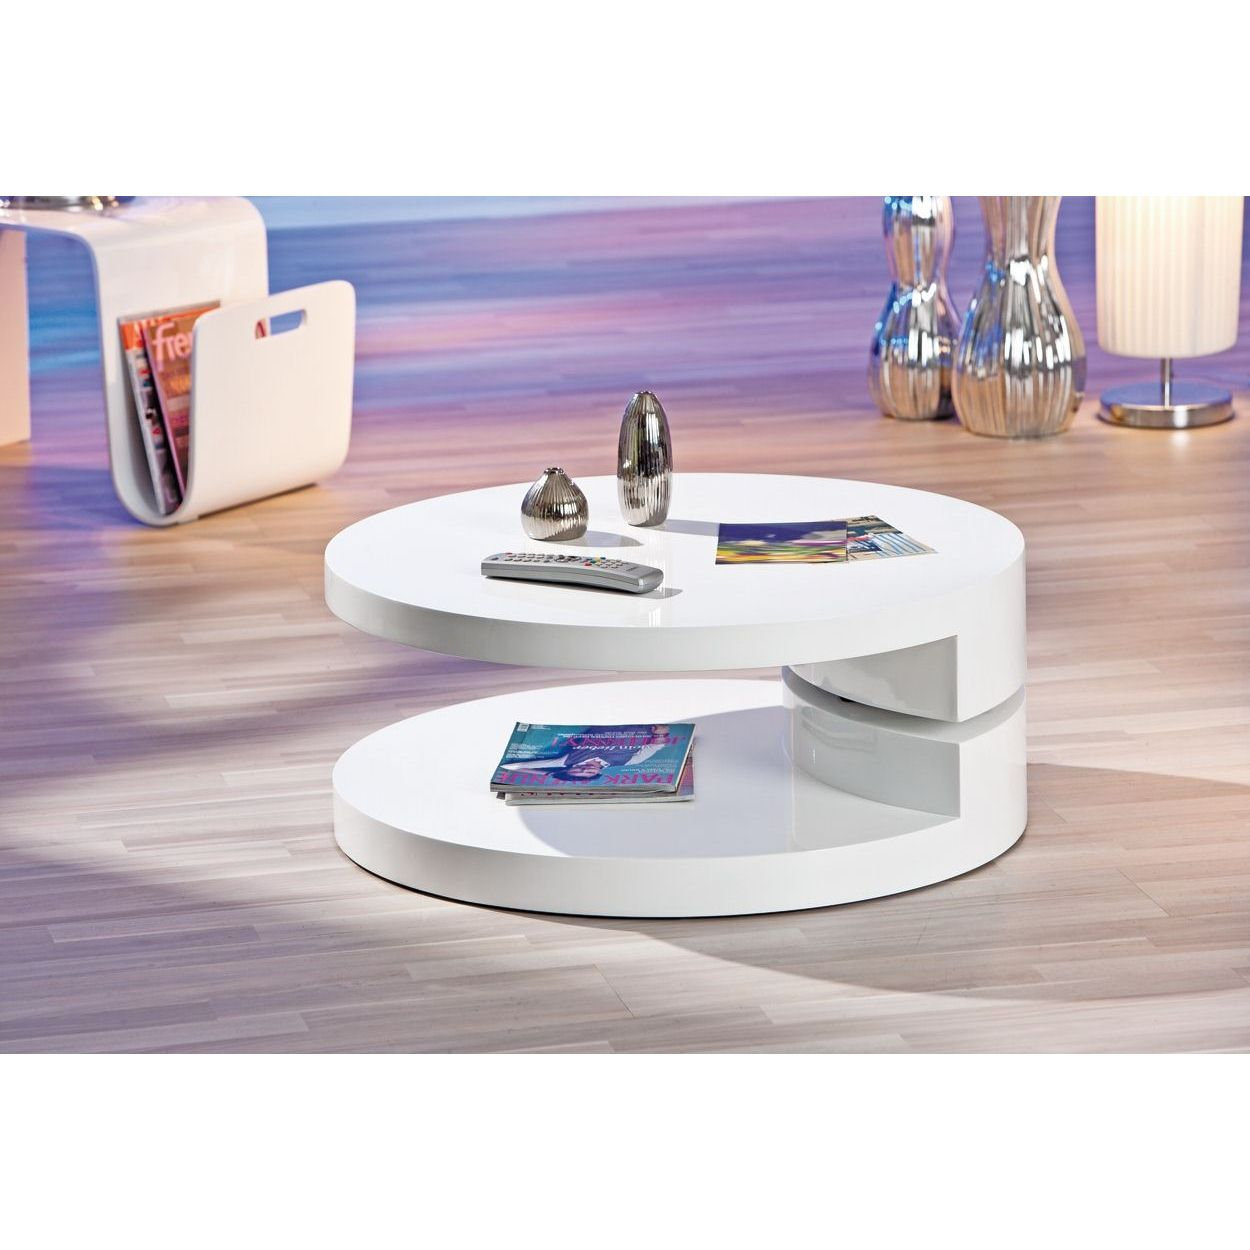 Deco in paris table basse laque blanc ronde extensible for Table extensible laque blanc